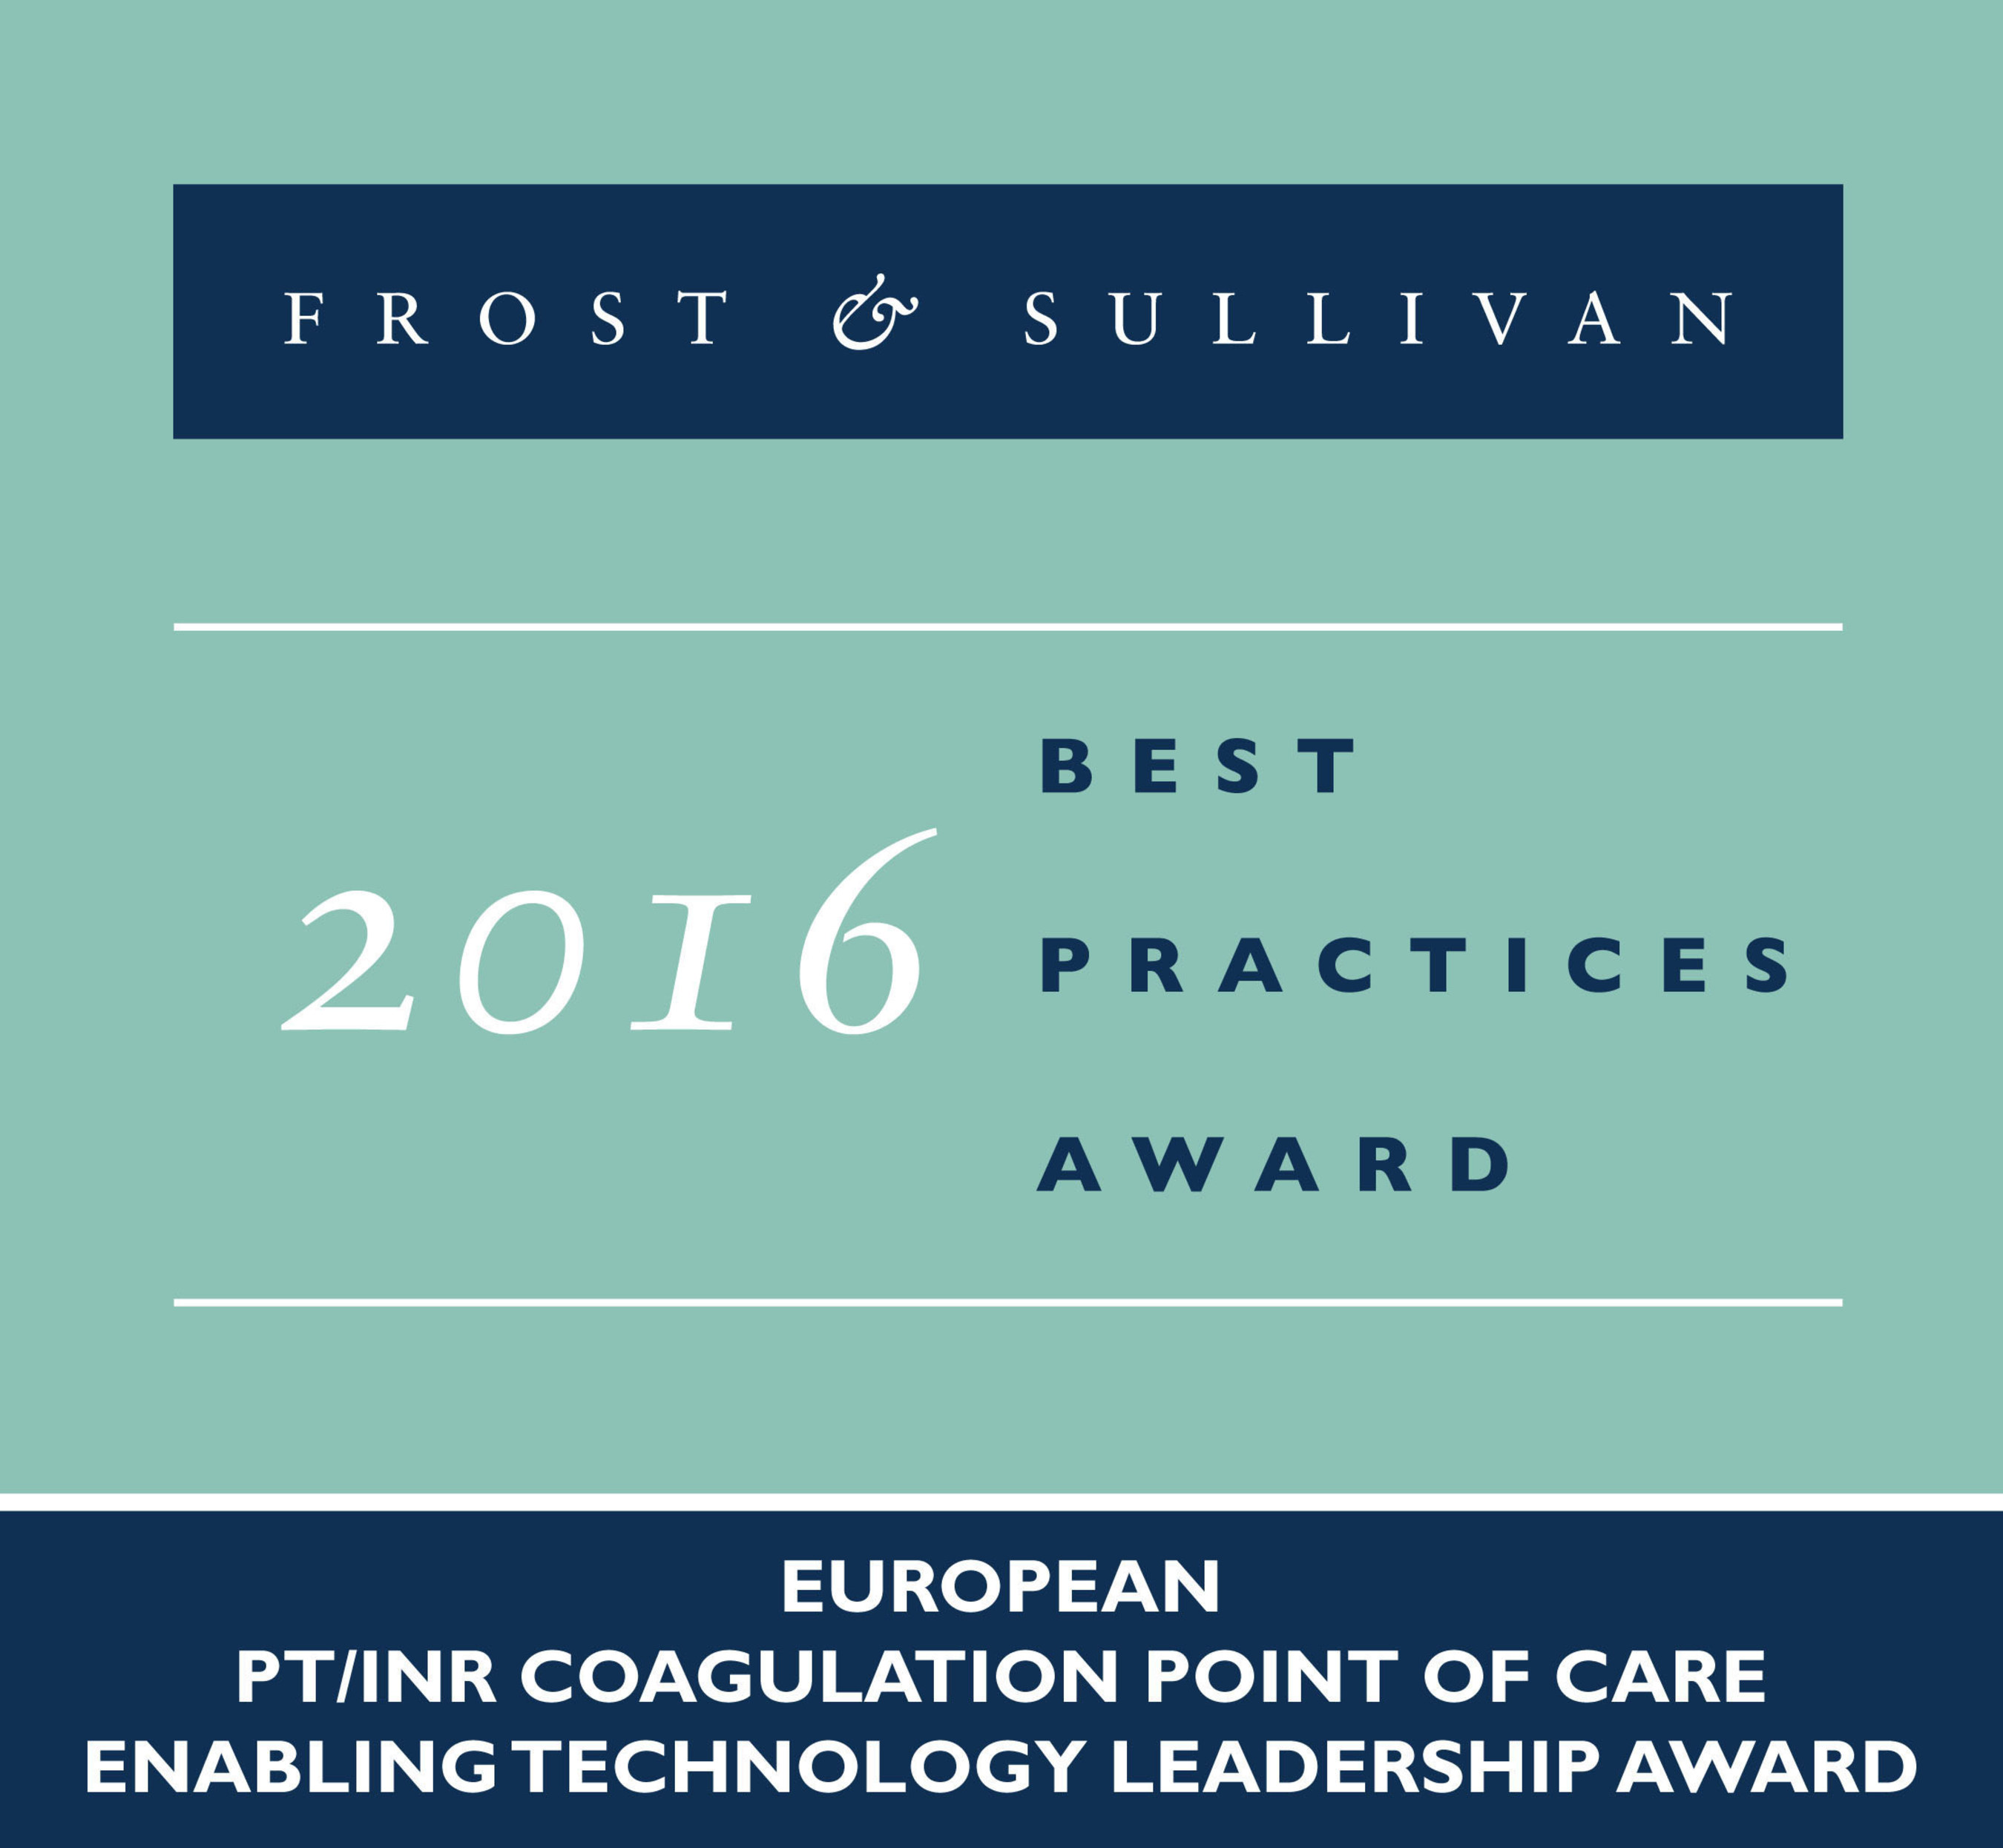 Frost & Sullivan recognizes iLine Microsystems with the 2016 European Enabling Technology Leadership Award.